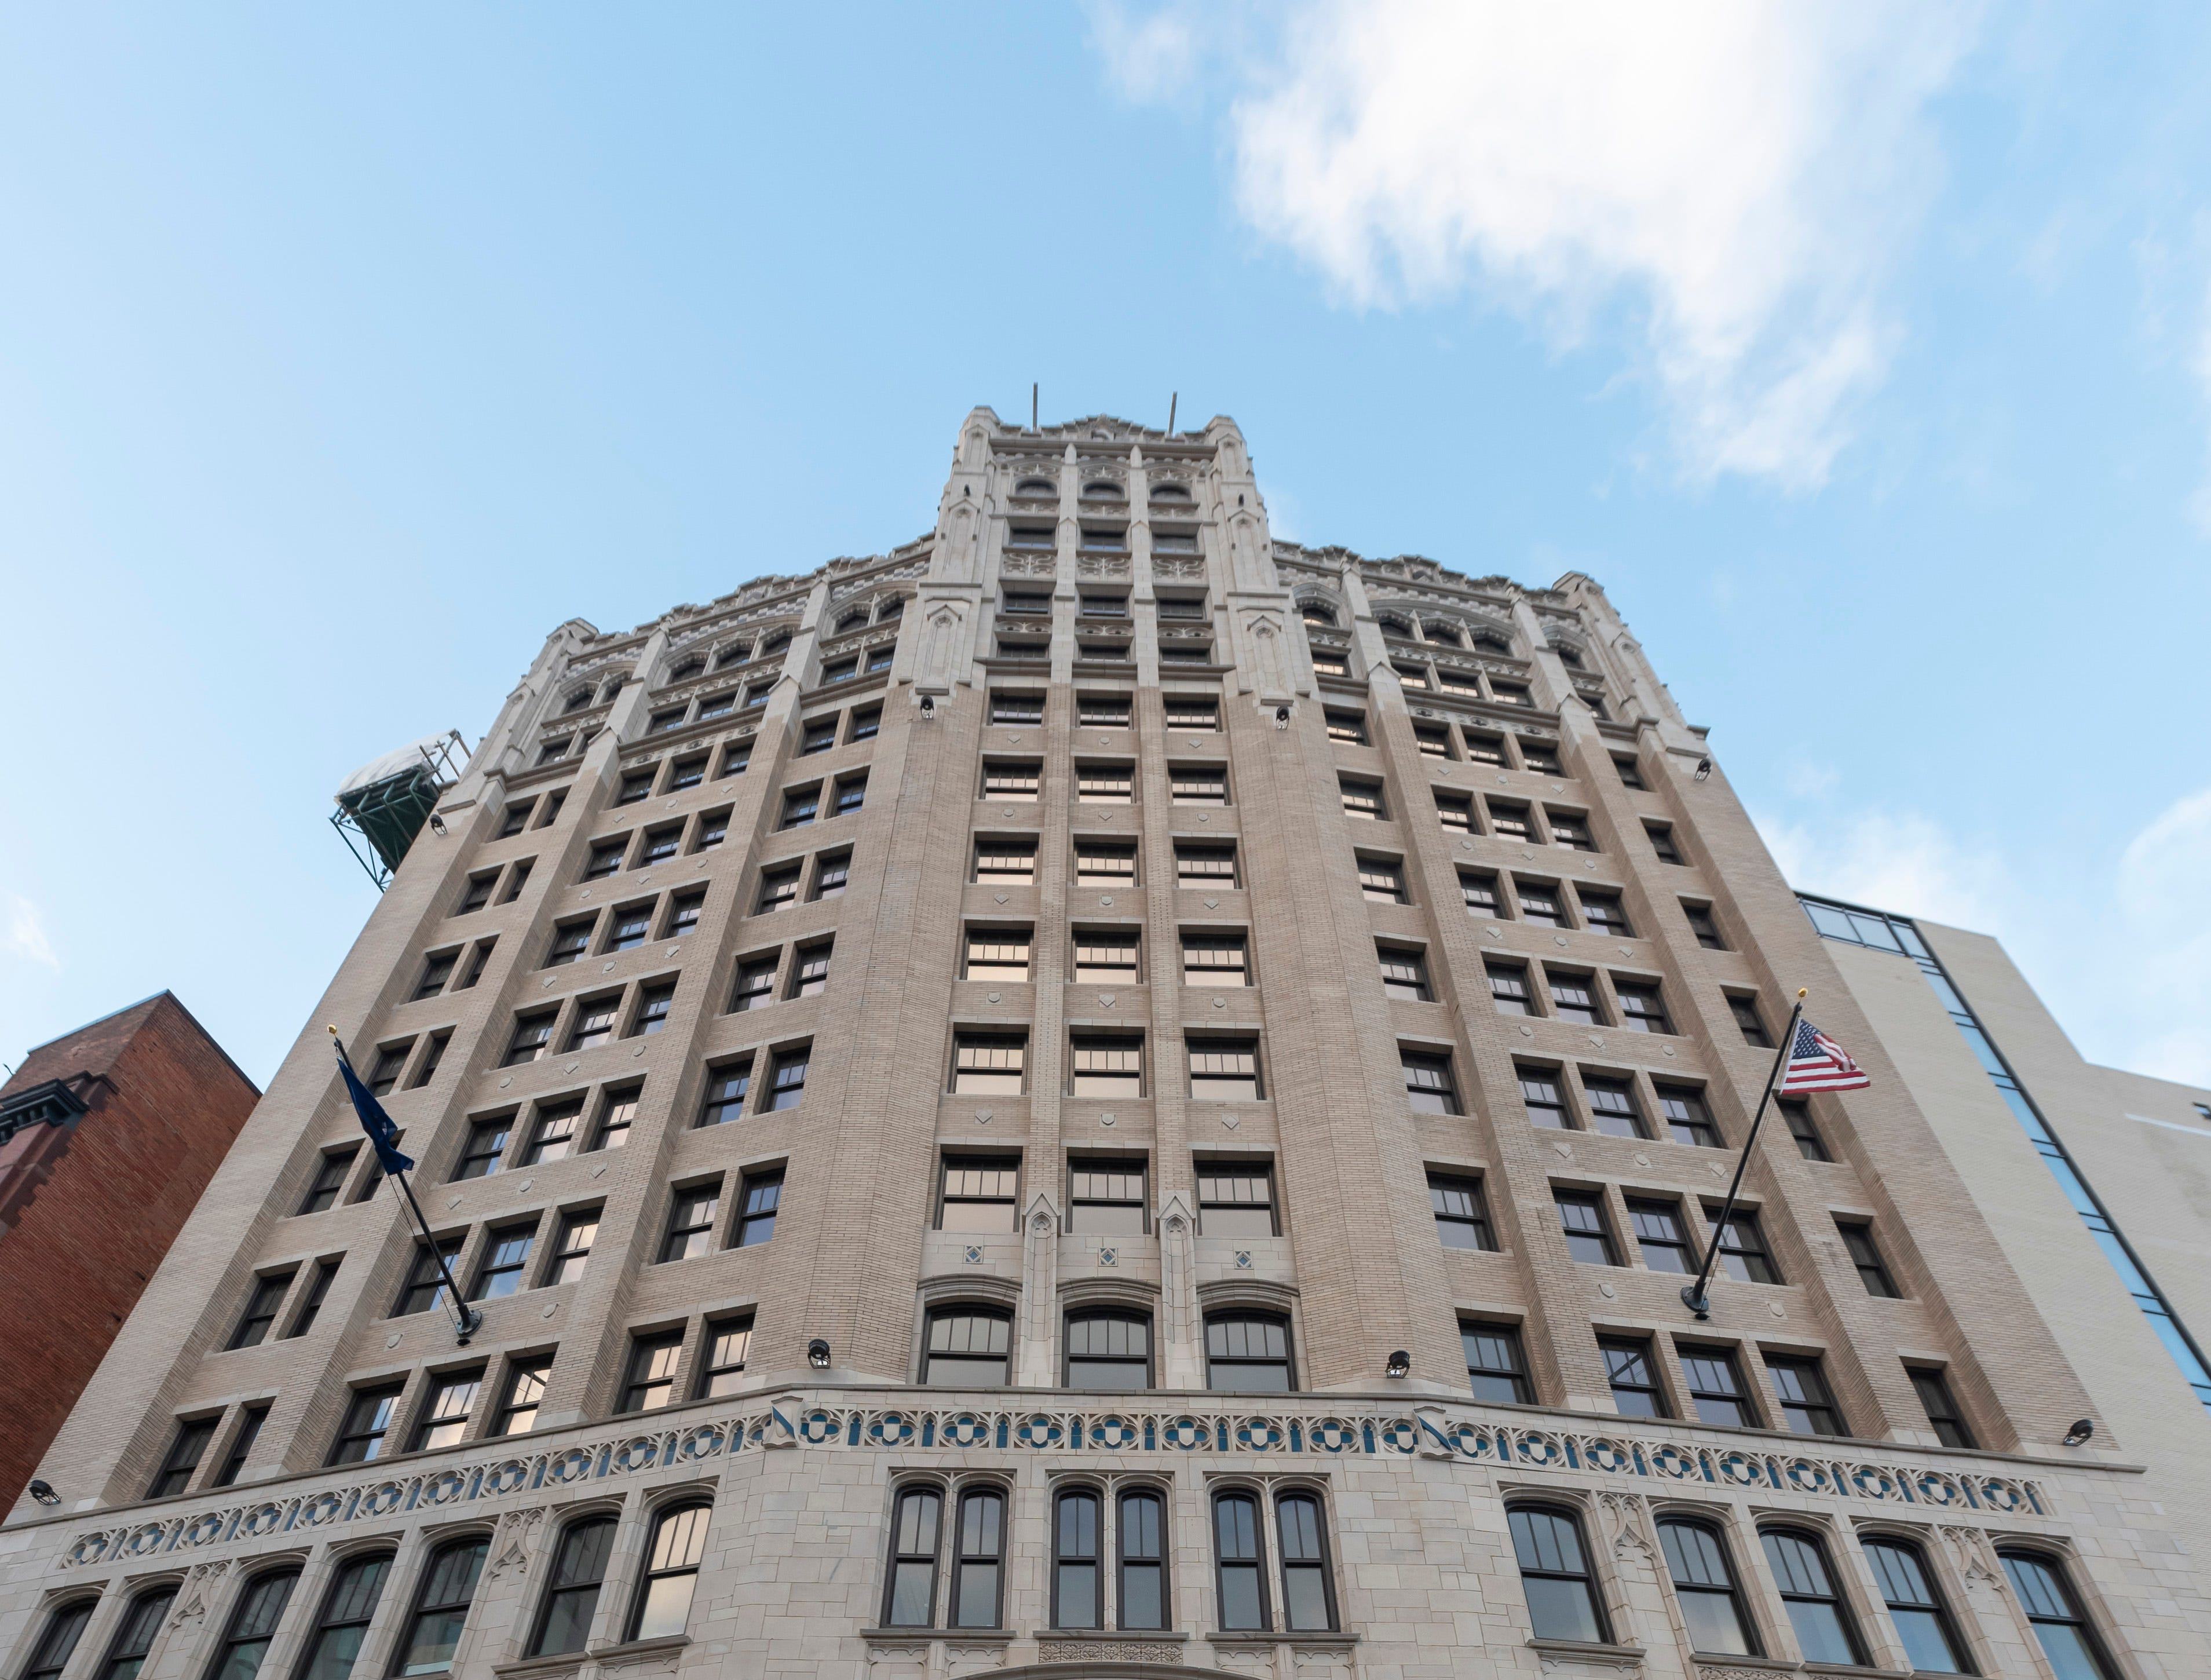 Originally opened in 1925,  the Metropolitan building at 33 John R had been vacant for almost 40 years.  Now it is reopening and will house the Element Detroit hotel.